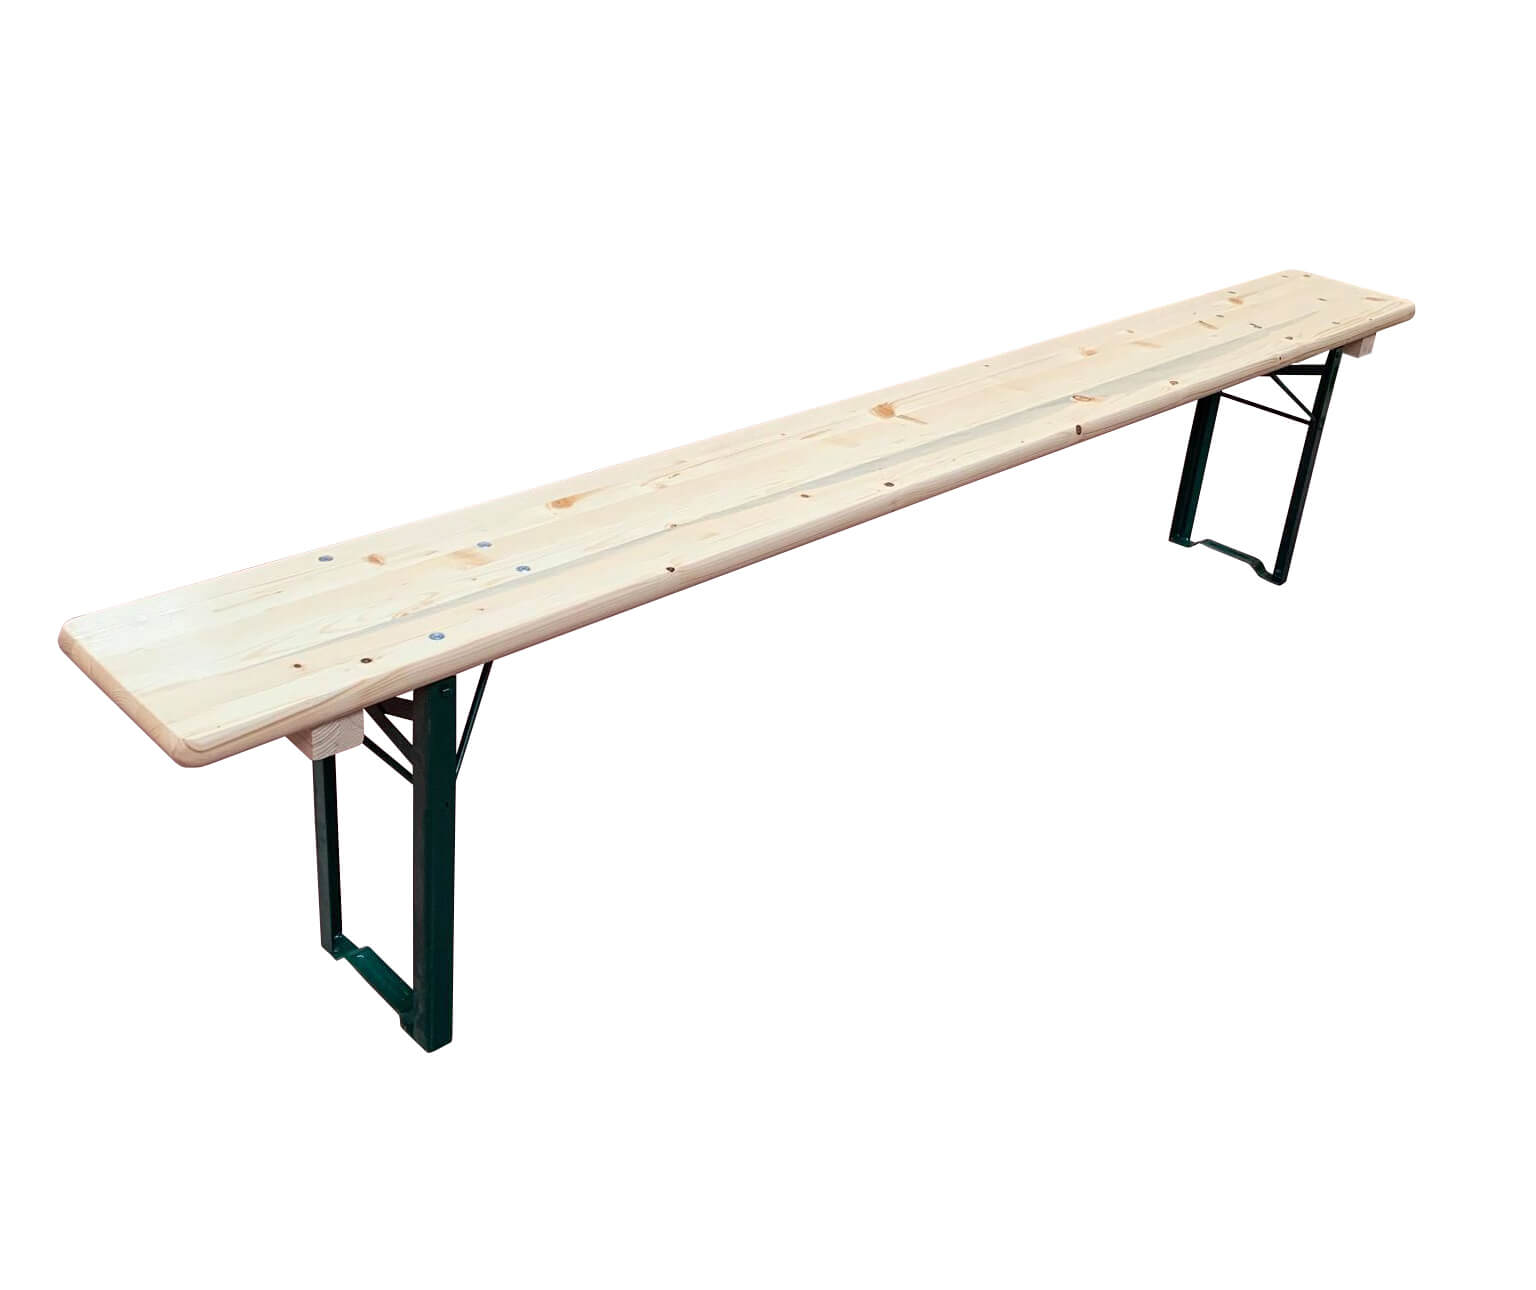 Table Pliante Et Banc Banc Brasserie En Bois 4 5 Personnes Table Non Comprise Chaise